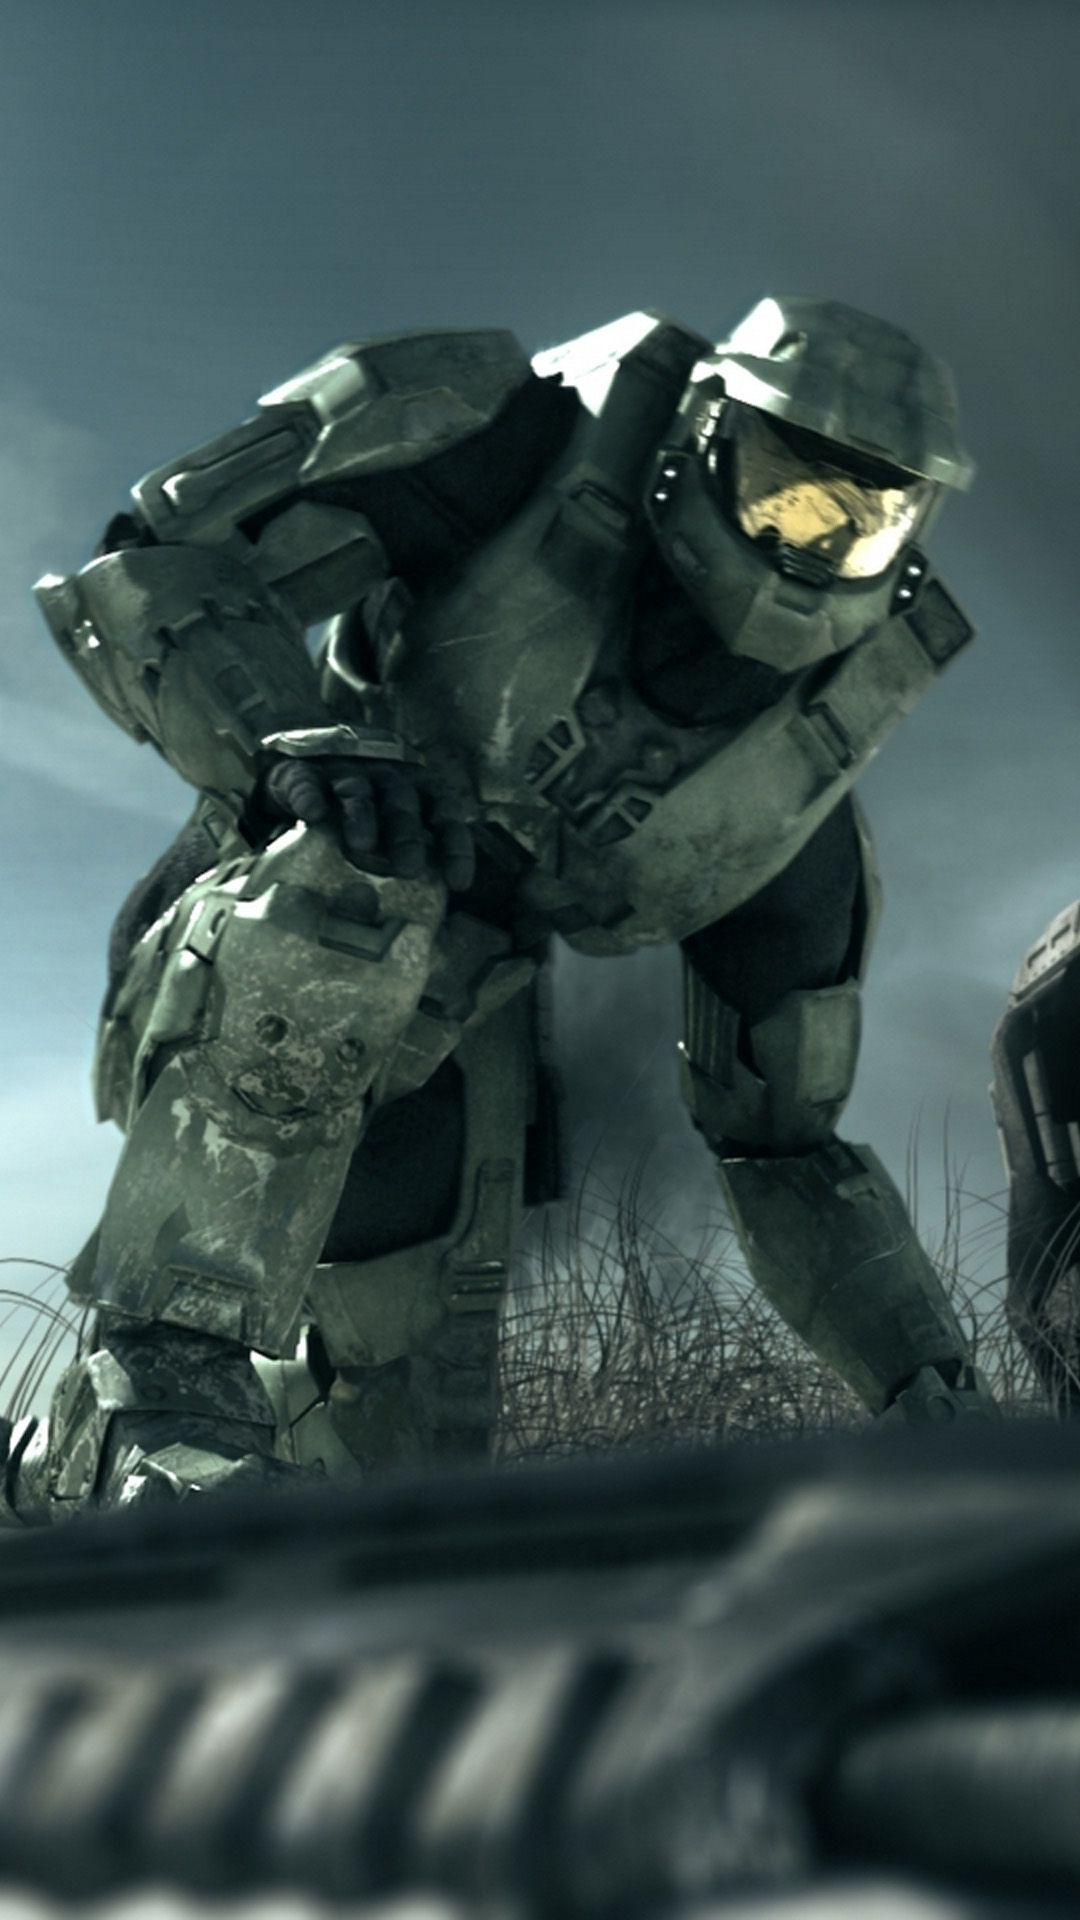 Halo Wallpaper Android Halo Combat Evolved Combat Evolved Halo Game